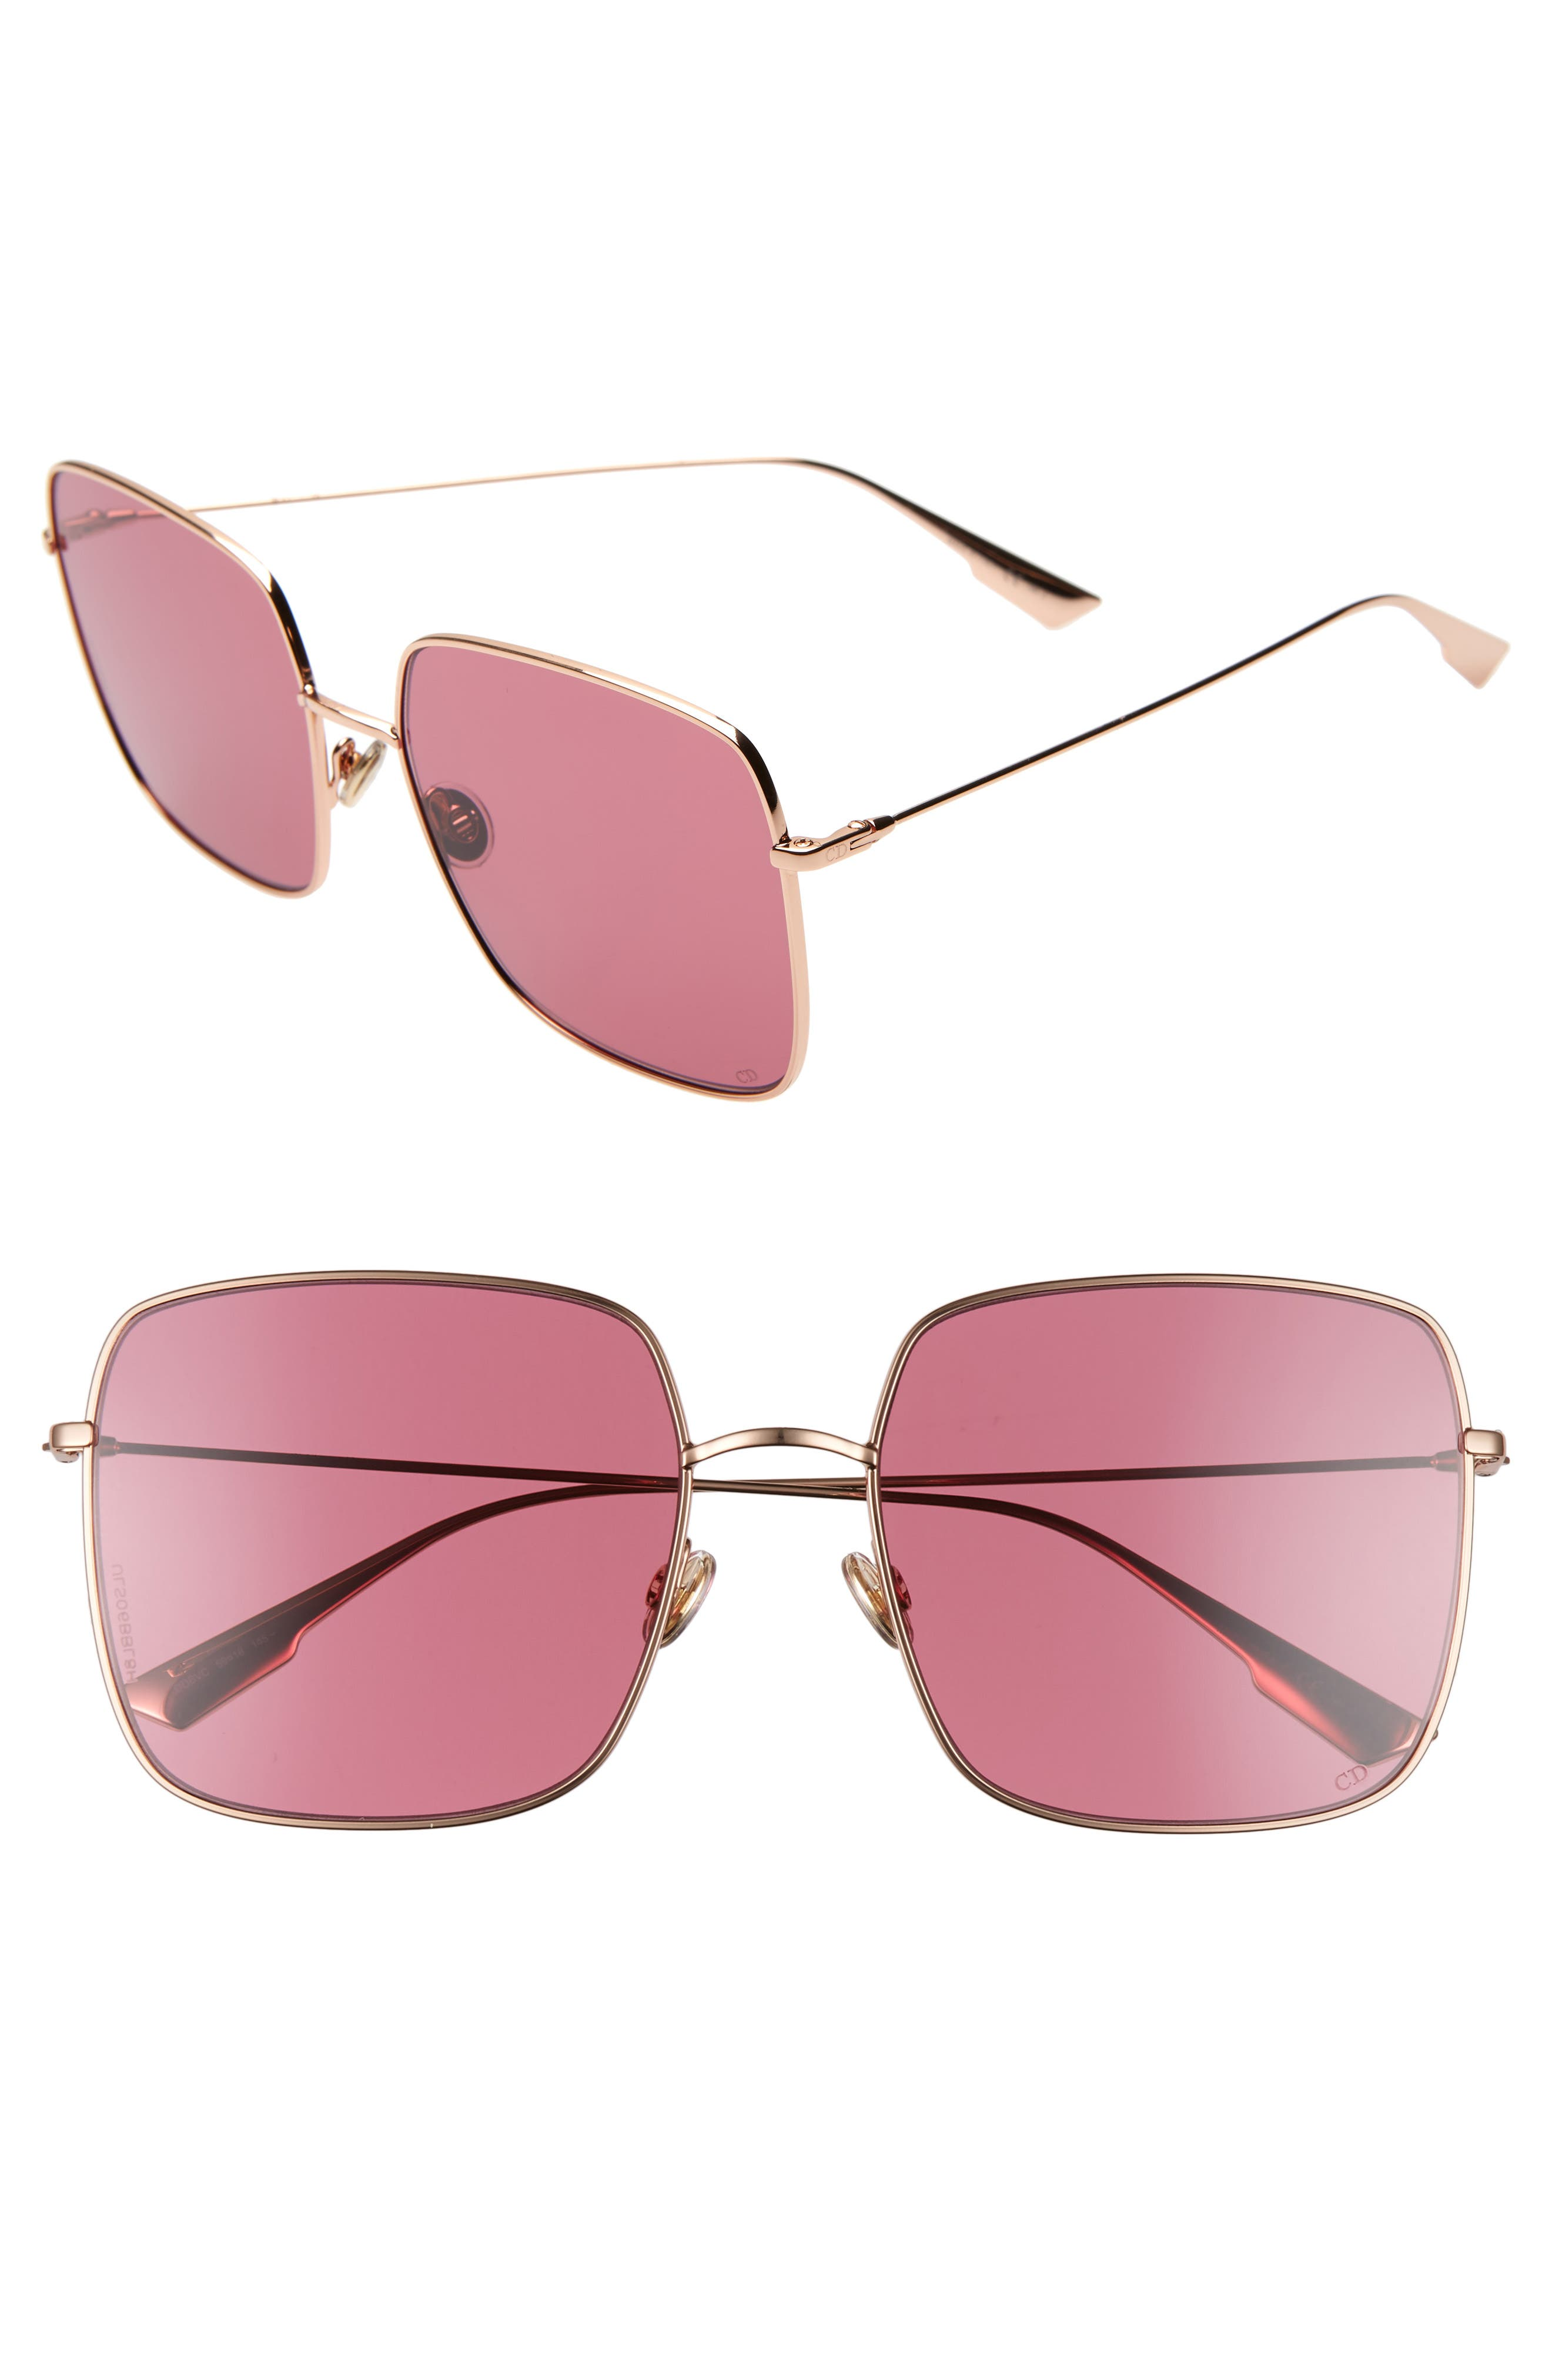 Stellaire 59mm Square Sunglasses,                             Main thumbnail 1, color,                             GOLD/ WINE